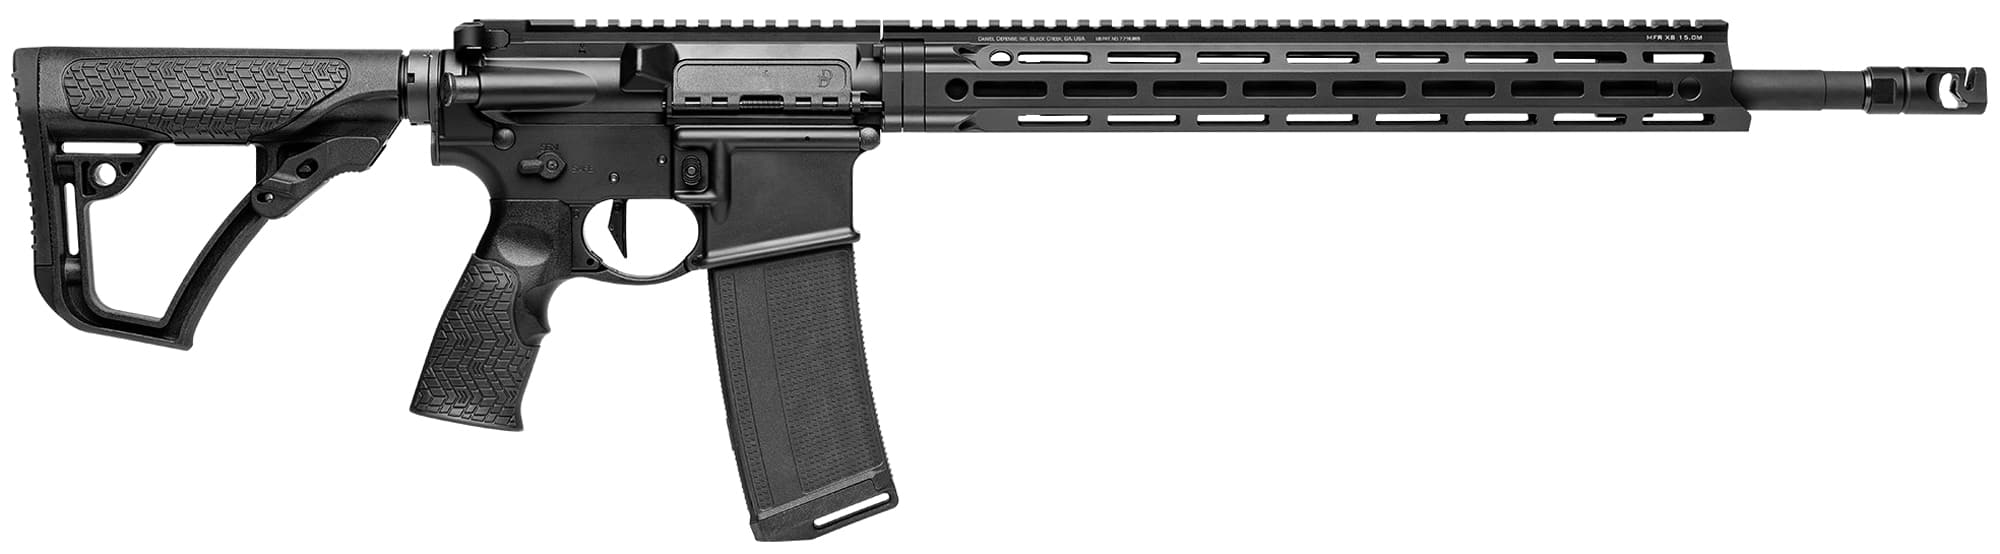 ddv7181-2-Daniel Defense DDM4V7-Pro Black 18 Barrel. Semi-Auto. Cal. 5.56 - DDV7181